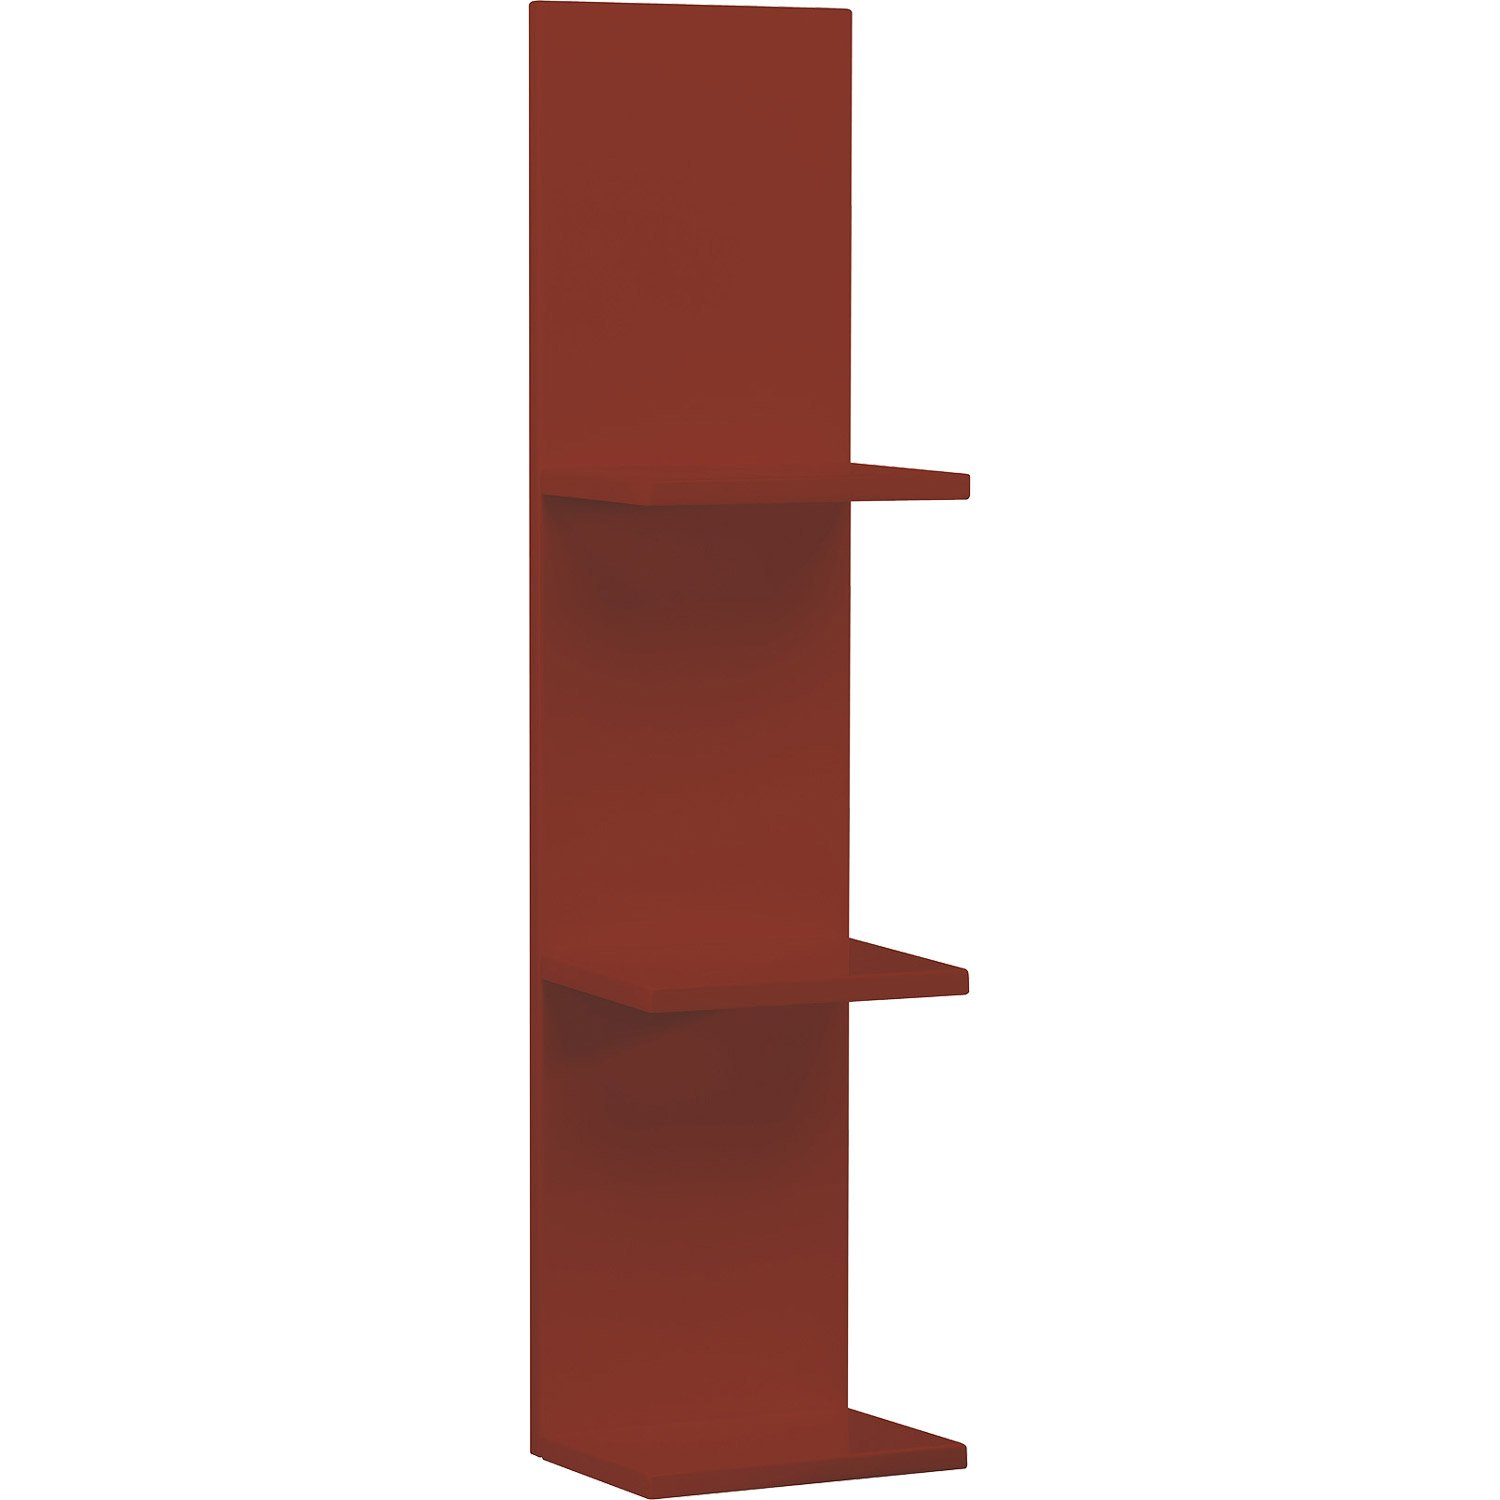 Etag re de wc remix rouge rouge n 3 for Leroy merlin etagere salle de bain